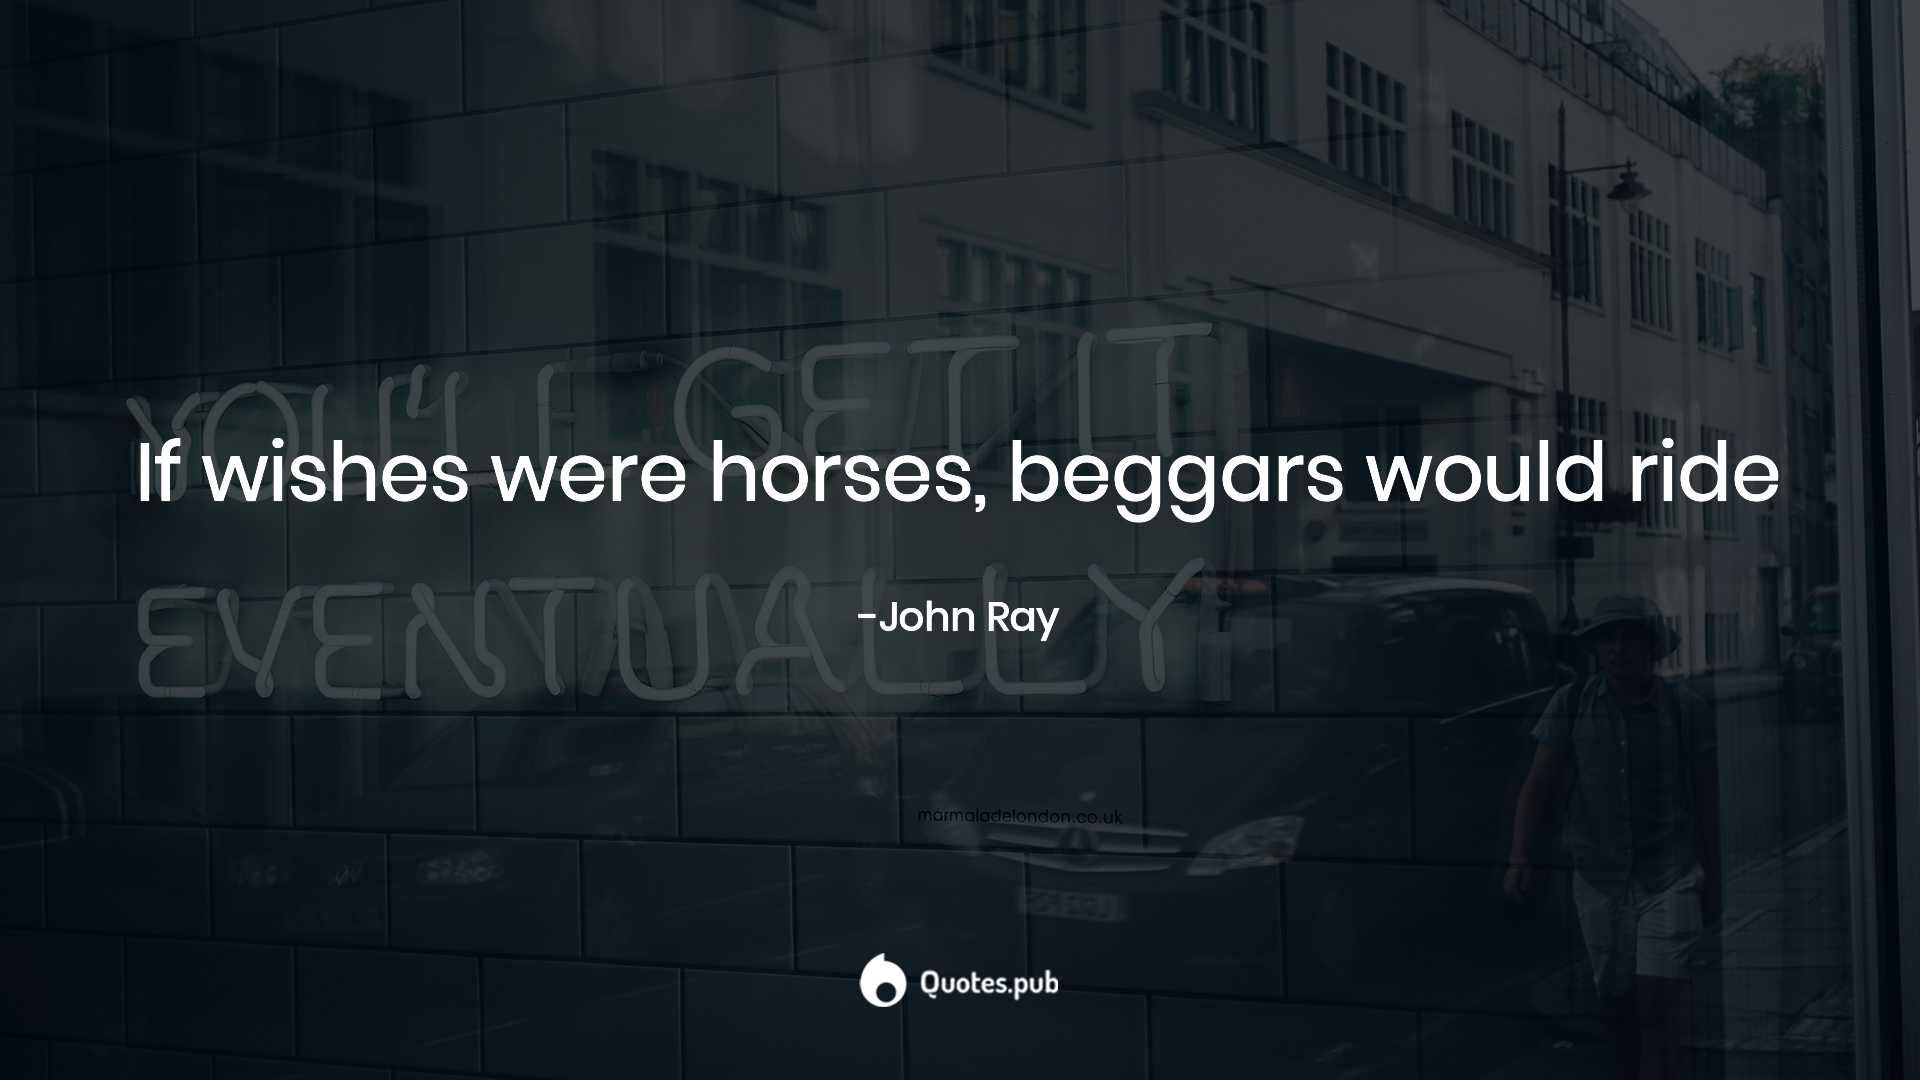 If Wishes Were Horses Beggars Would Ride John Ray Quotes Pub